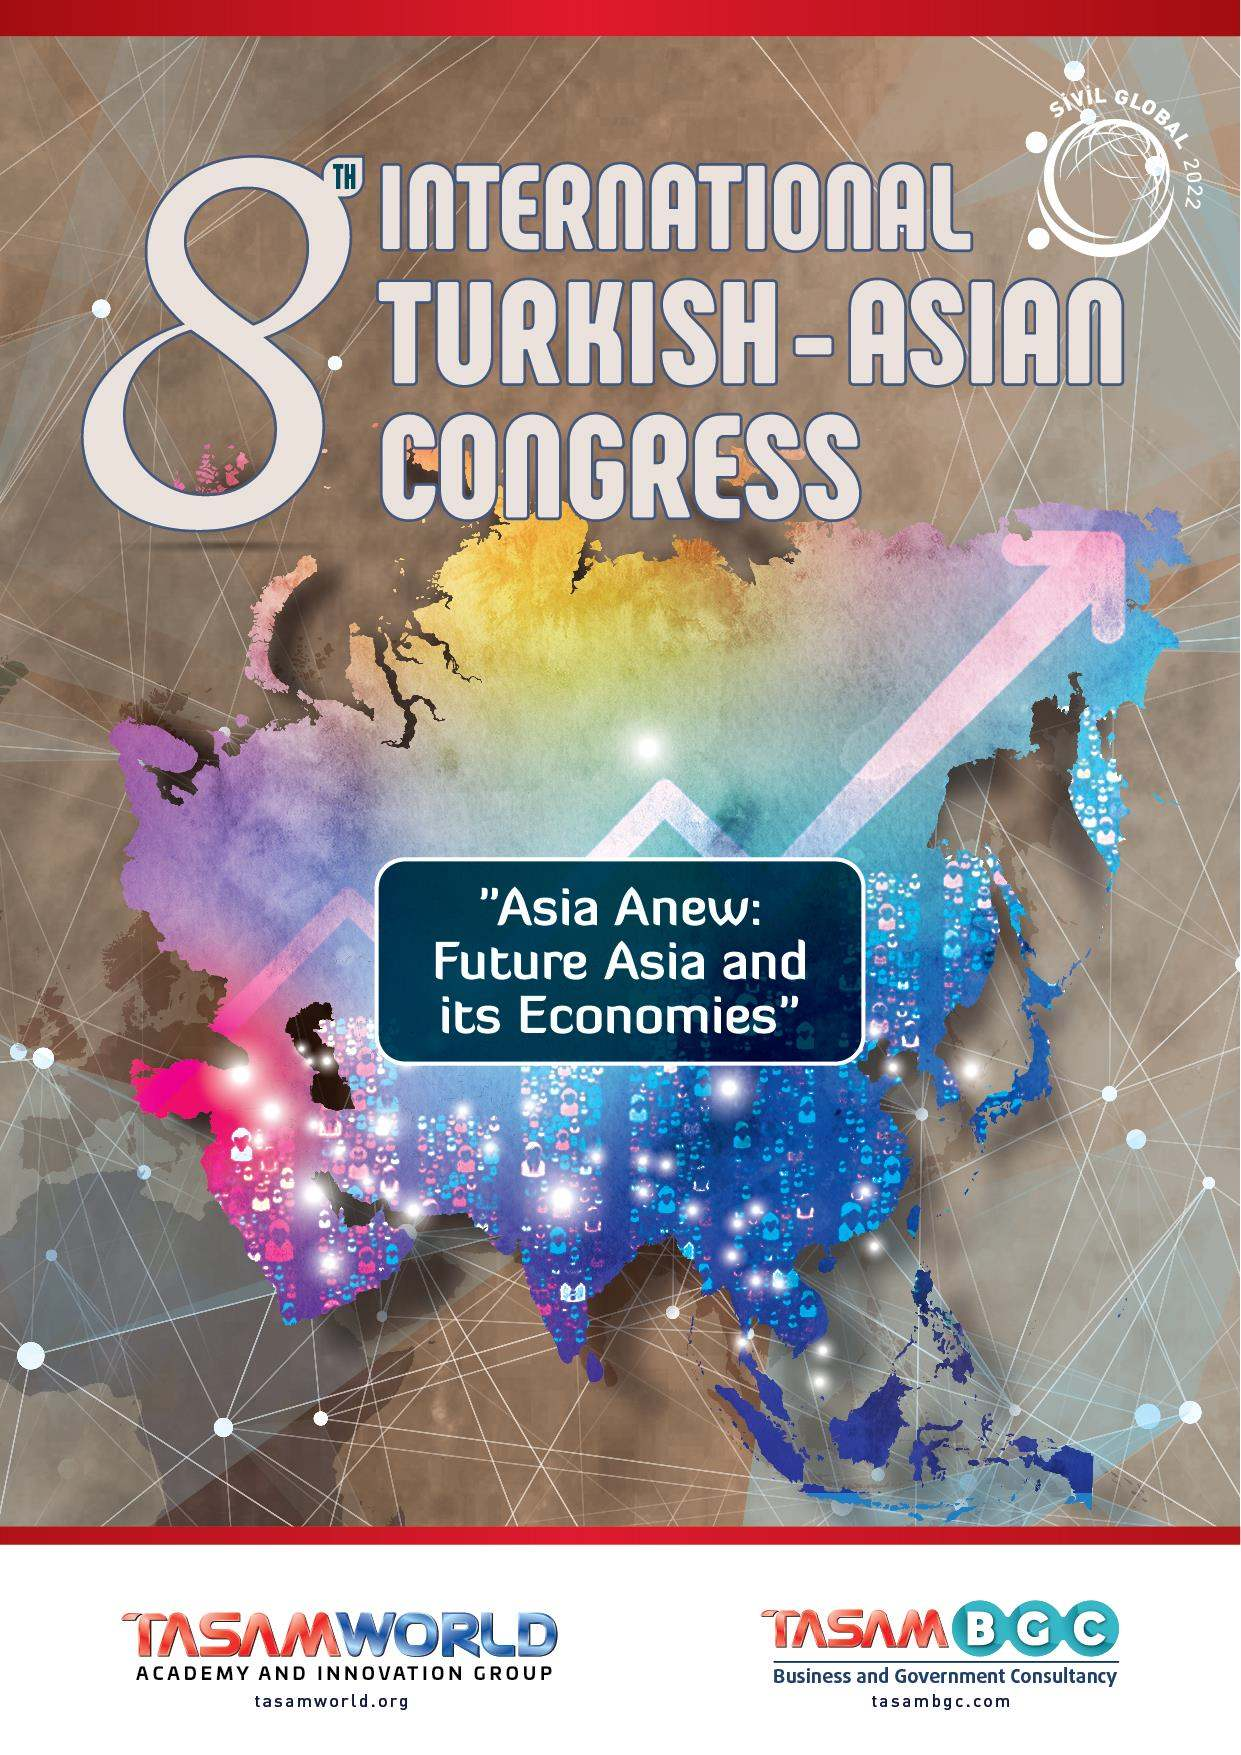 8th International Turkish - Asian Congress